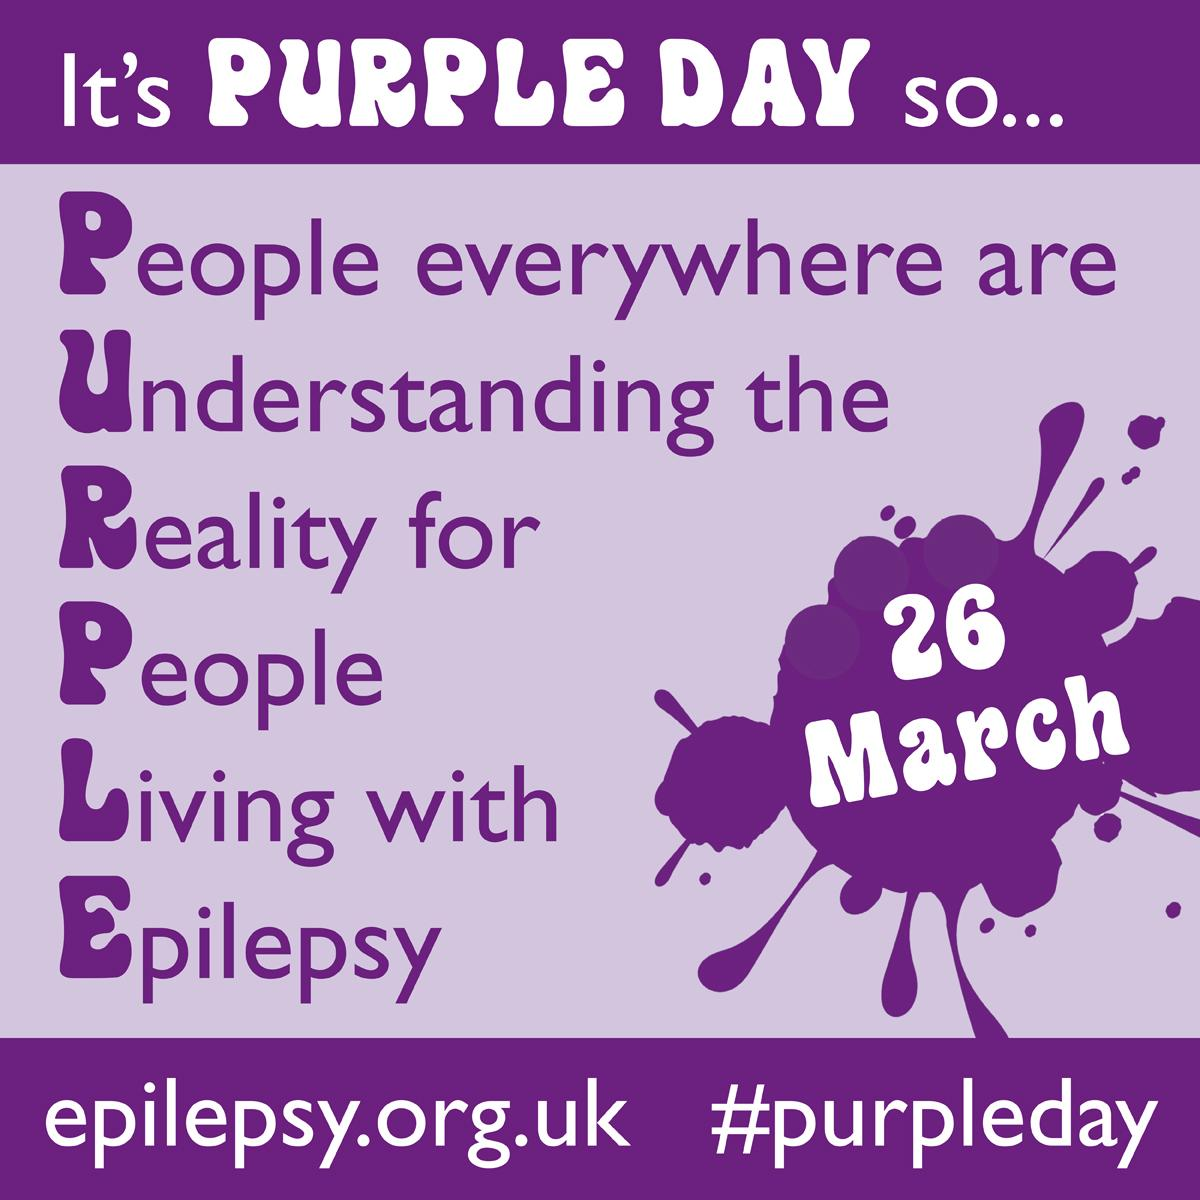 Happy #purpleday, the global awareness day for #epilepsy http://t.co/HVb1V3CgiG http://t.co/jHf8KBWMvv